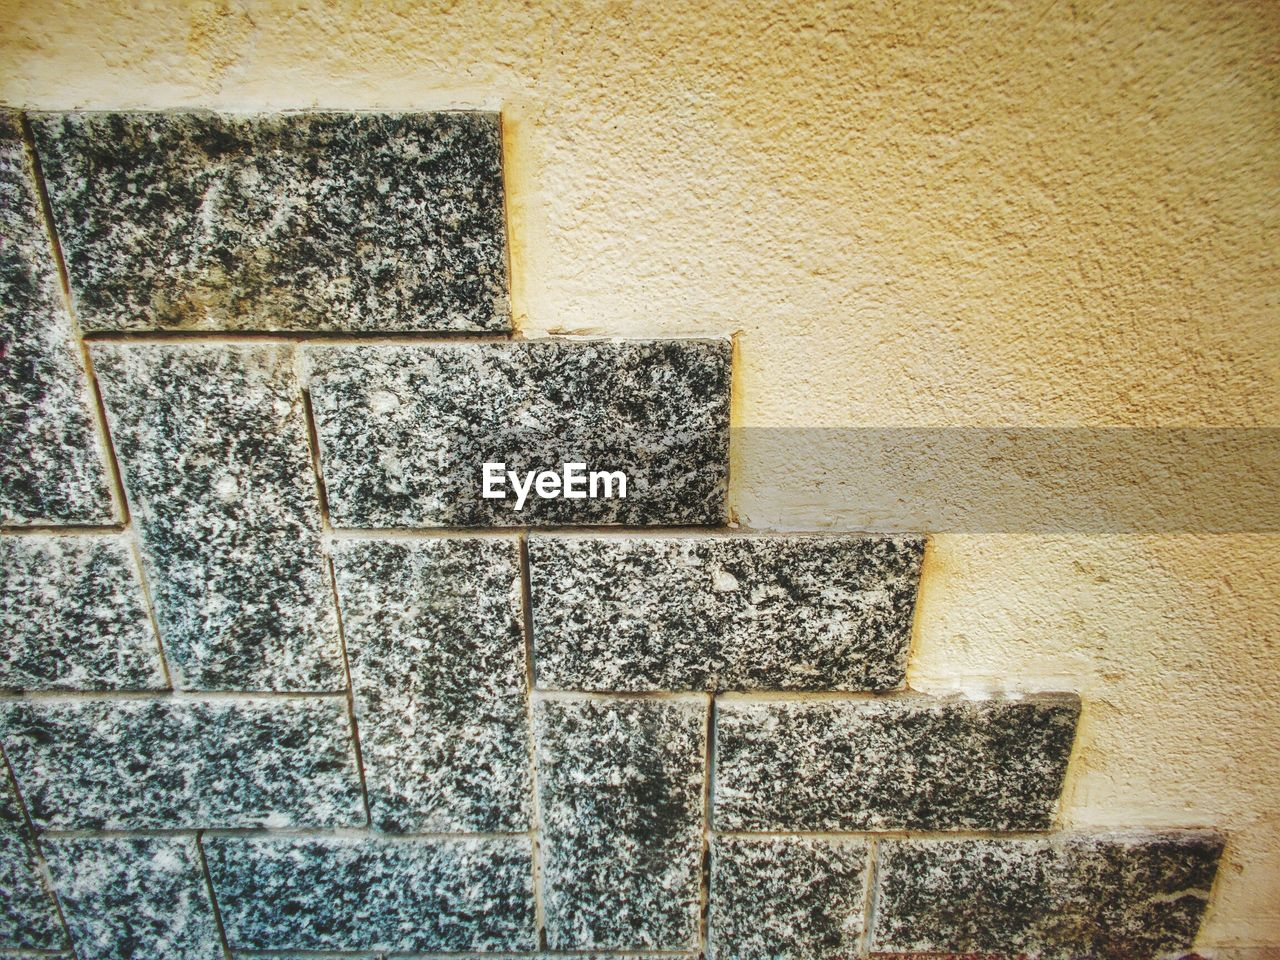 wall - building feature, built structure, stone material, textured, architecture, no people, day, indoors, building exterior, close-up